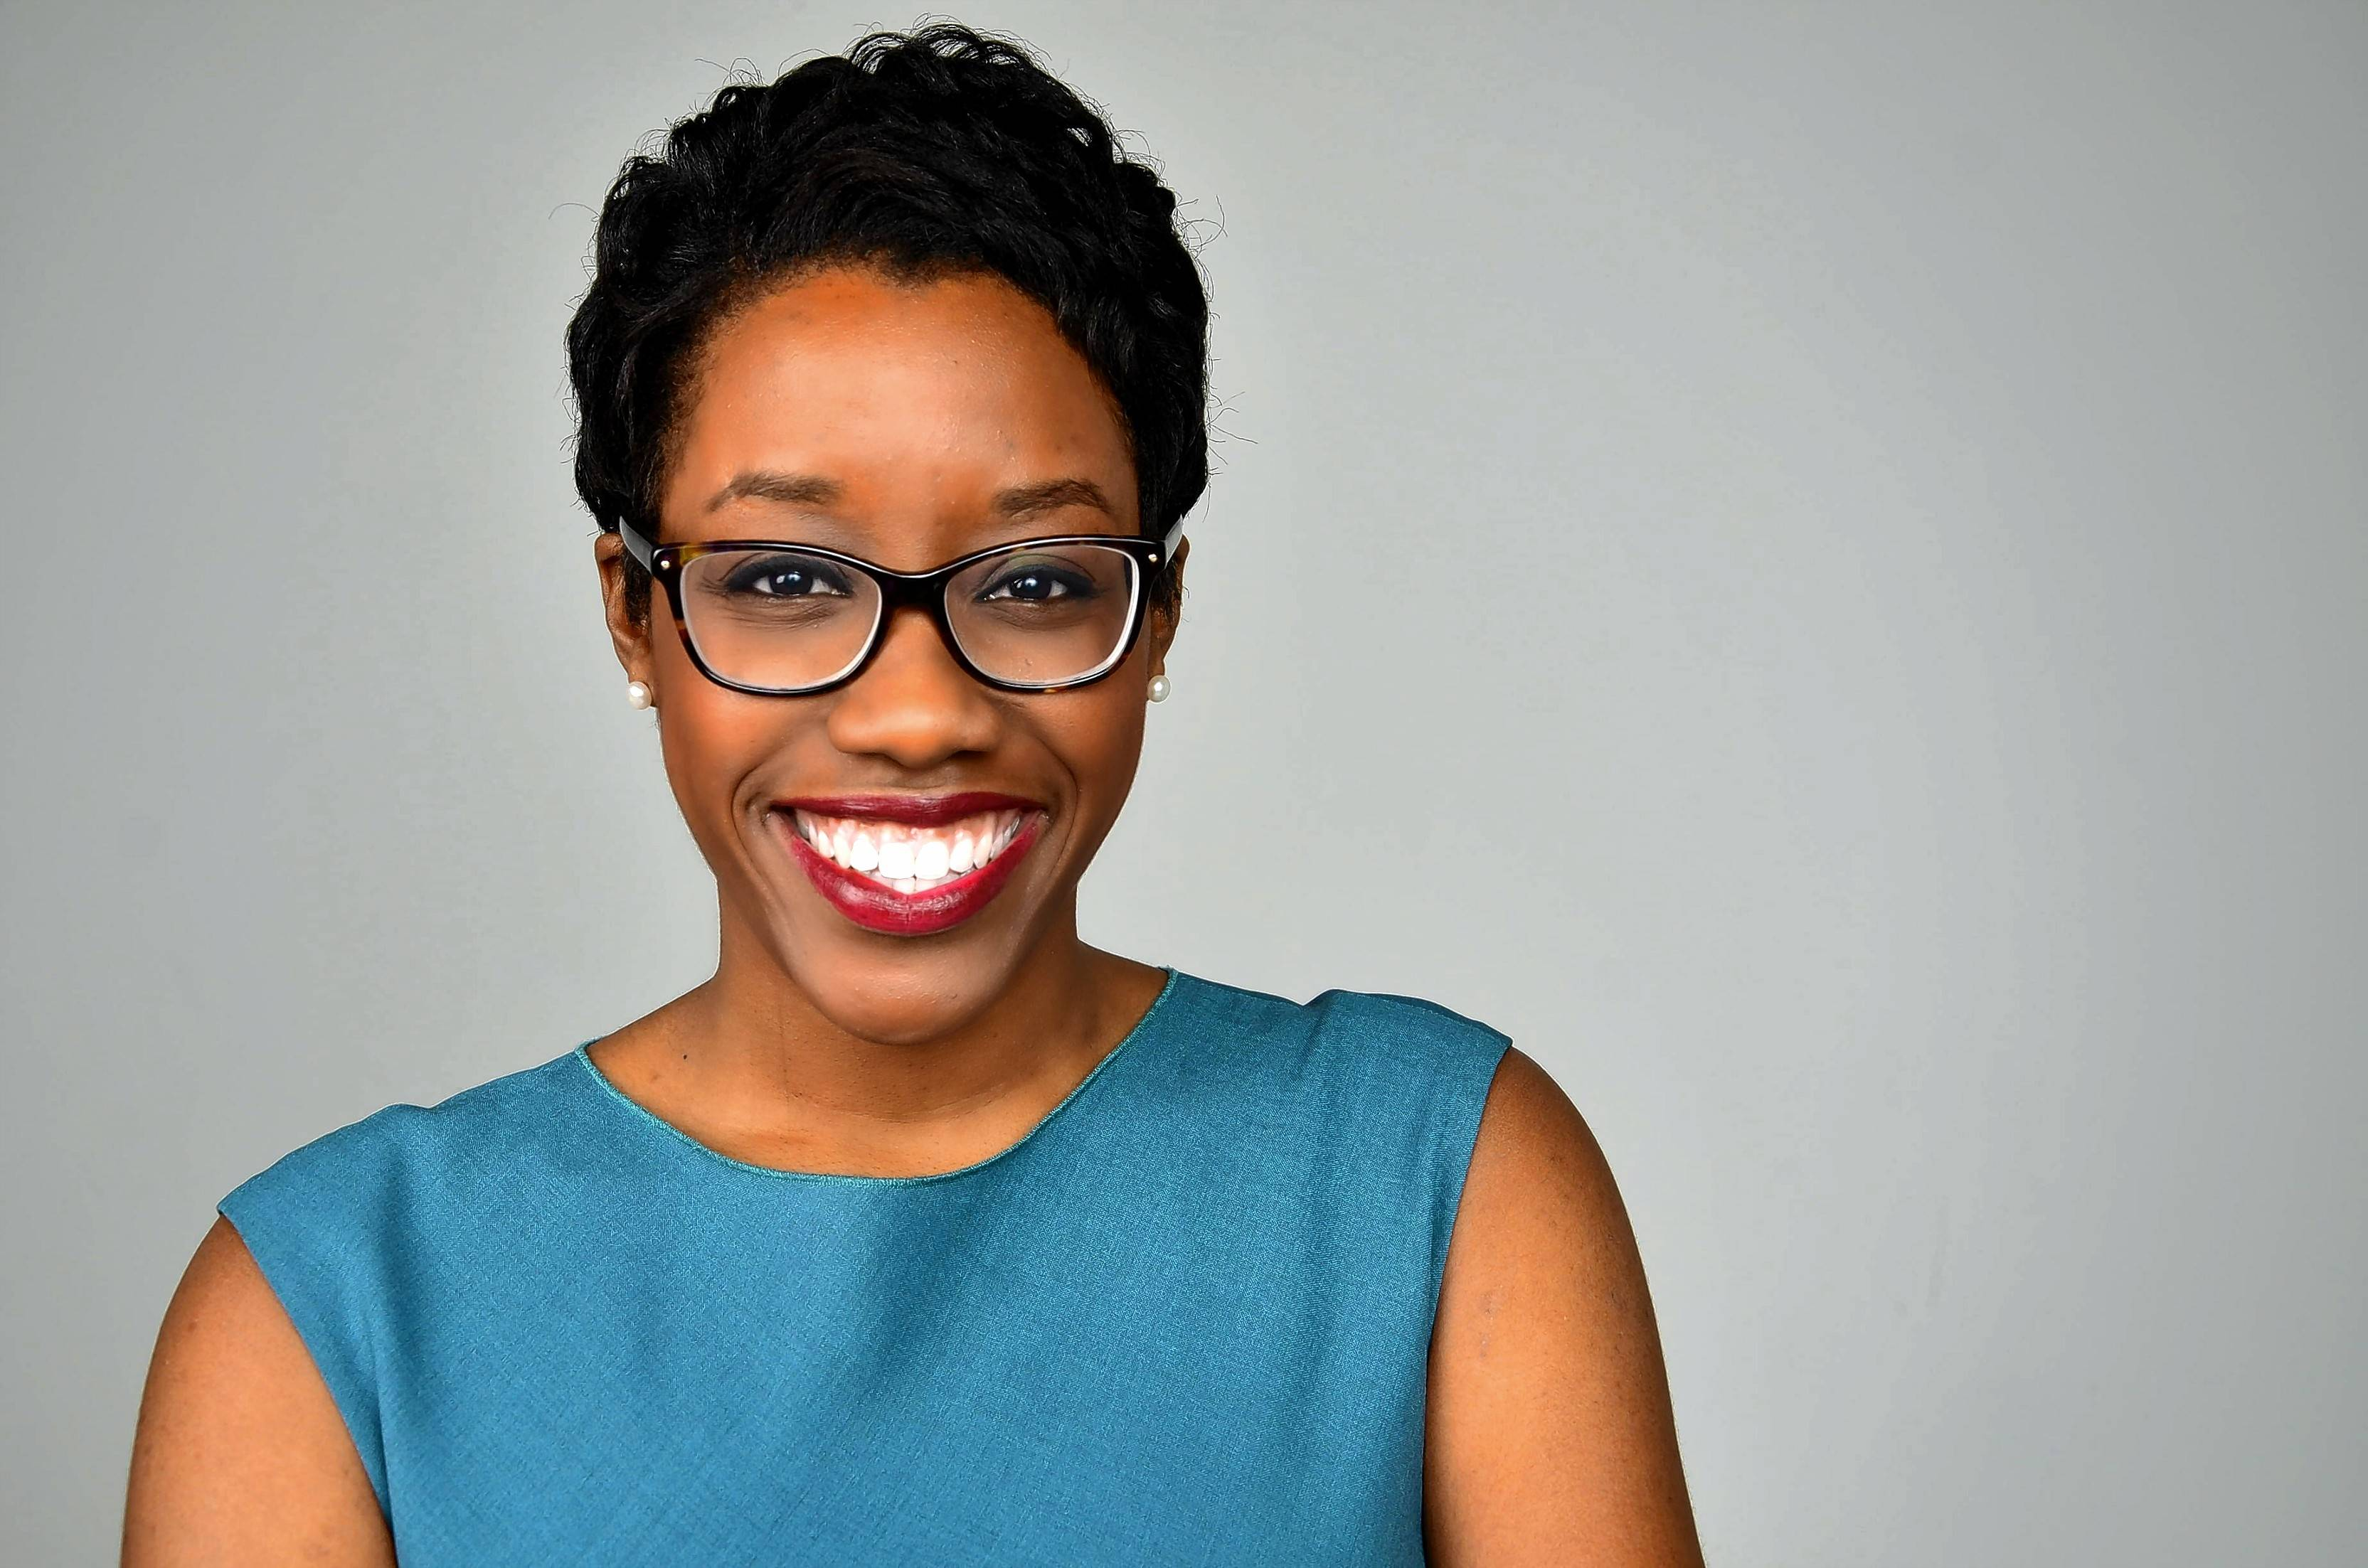 Lauren Underwood, 30, of Naperville, is a registered nurse and health policy expert who is running as a Democrat for the 14th District seat in the U.S. House of Representatives.